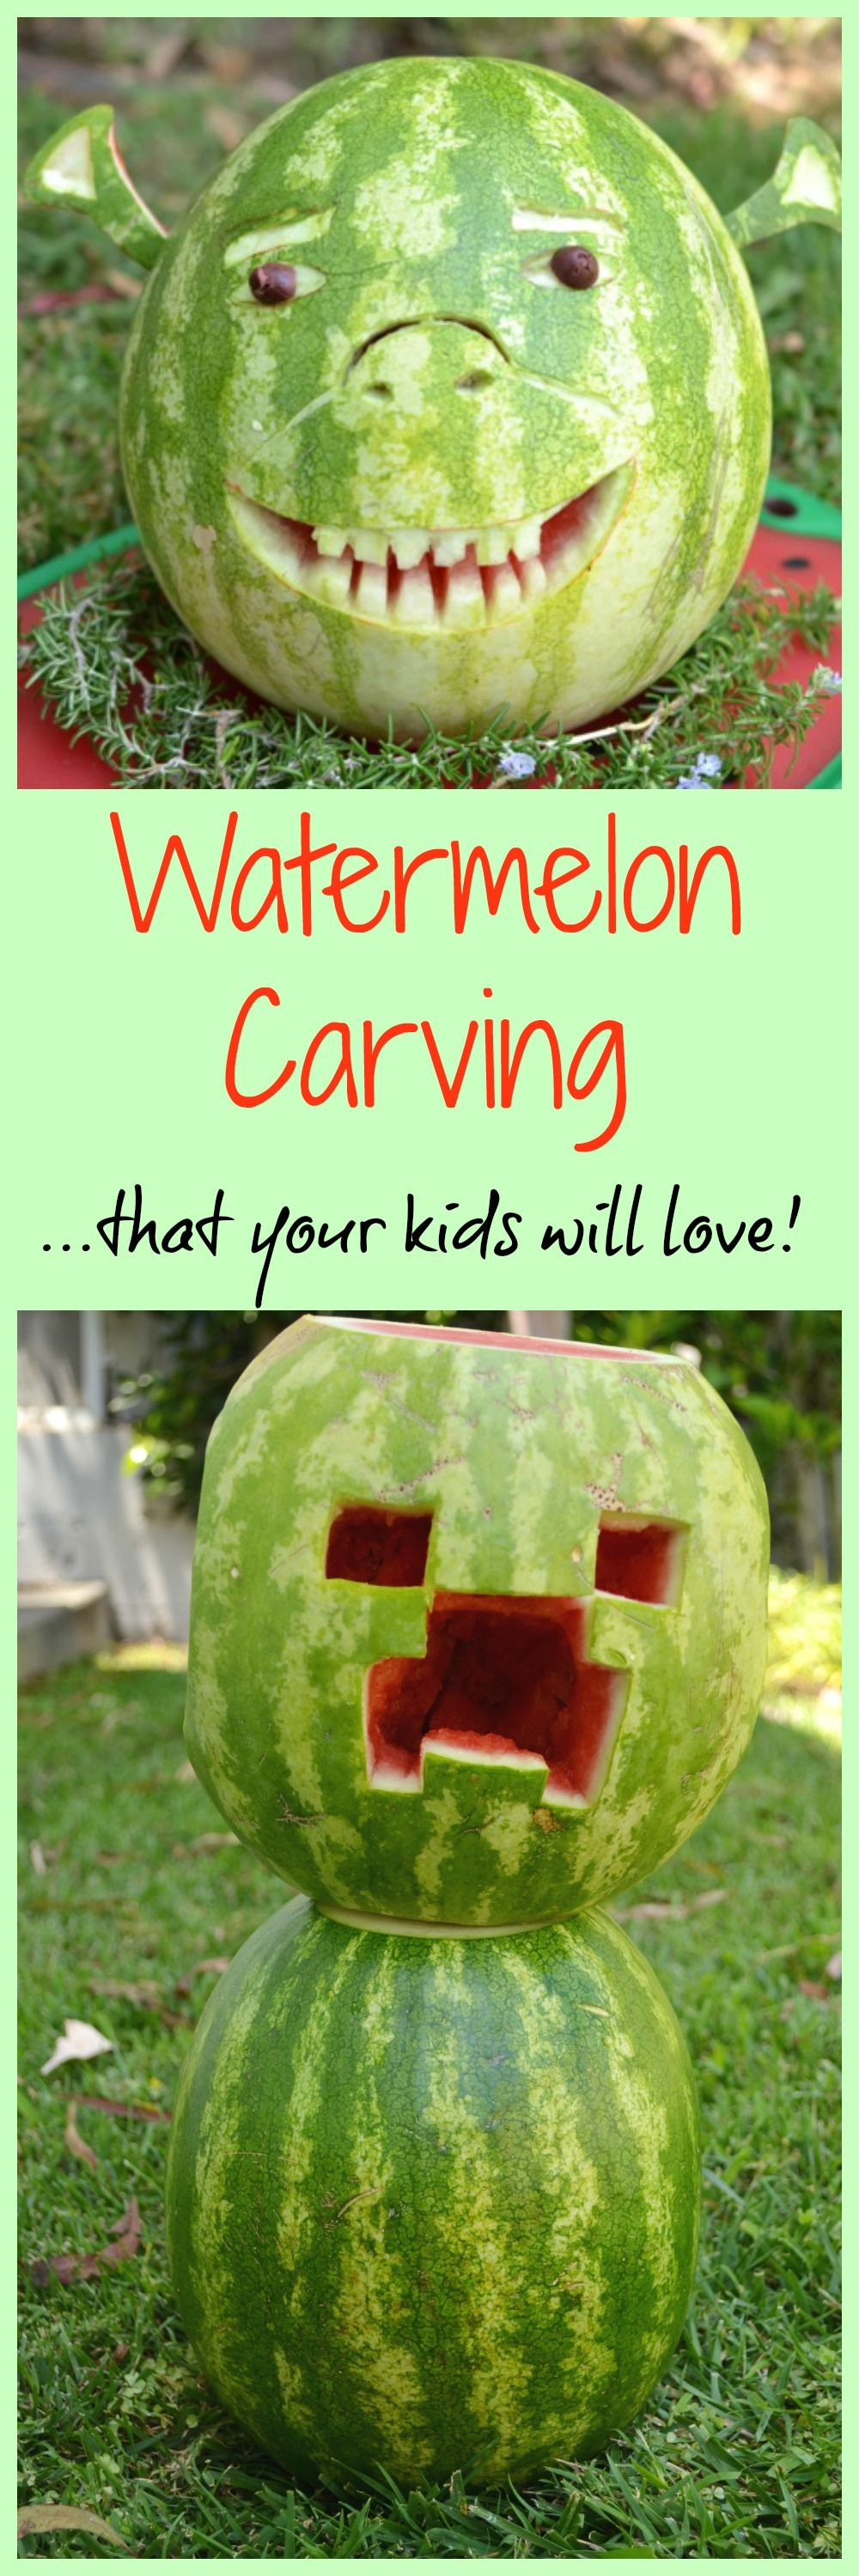 Summer Watermelon Carving - Jolly Tomato